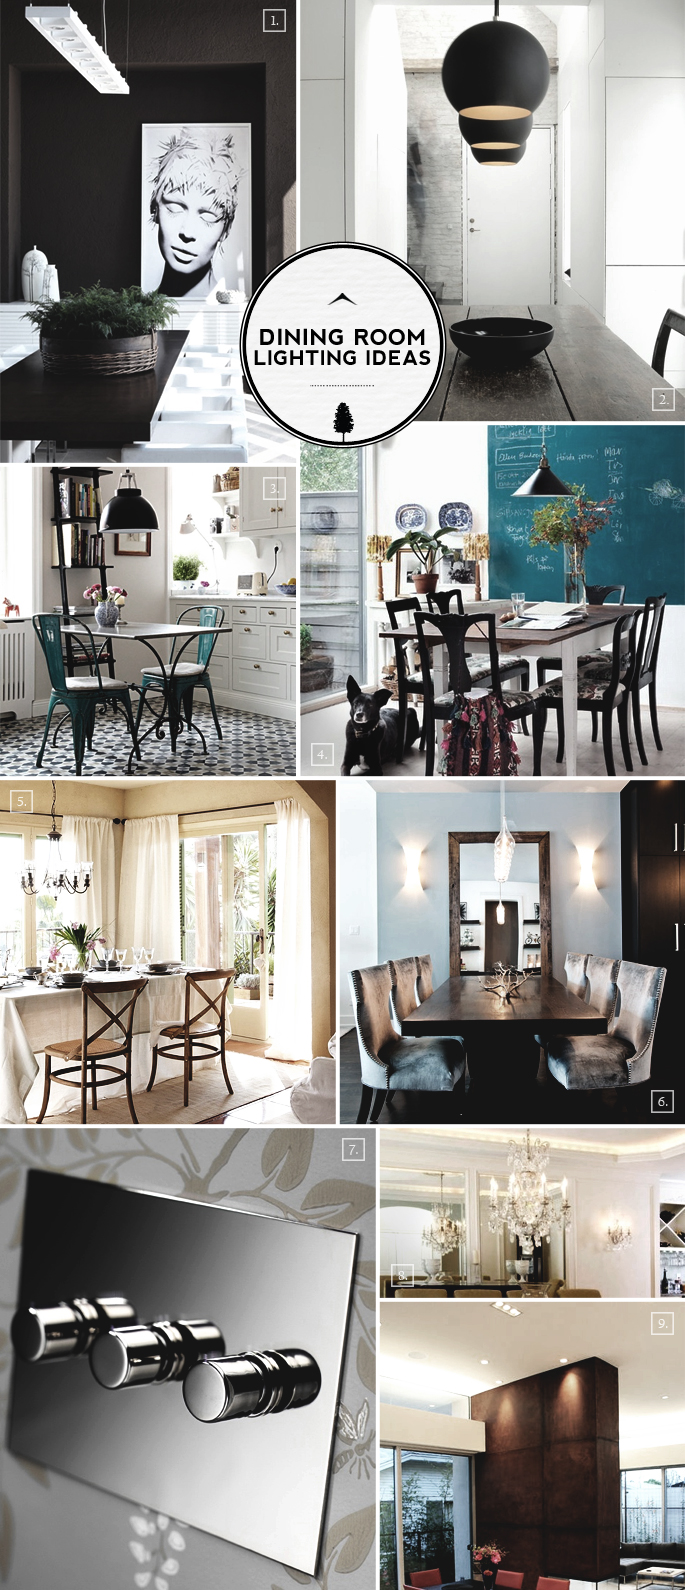 A Design Guide For Dining Room Lighting Ideas Home Tree